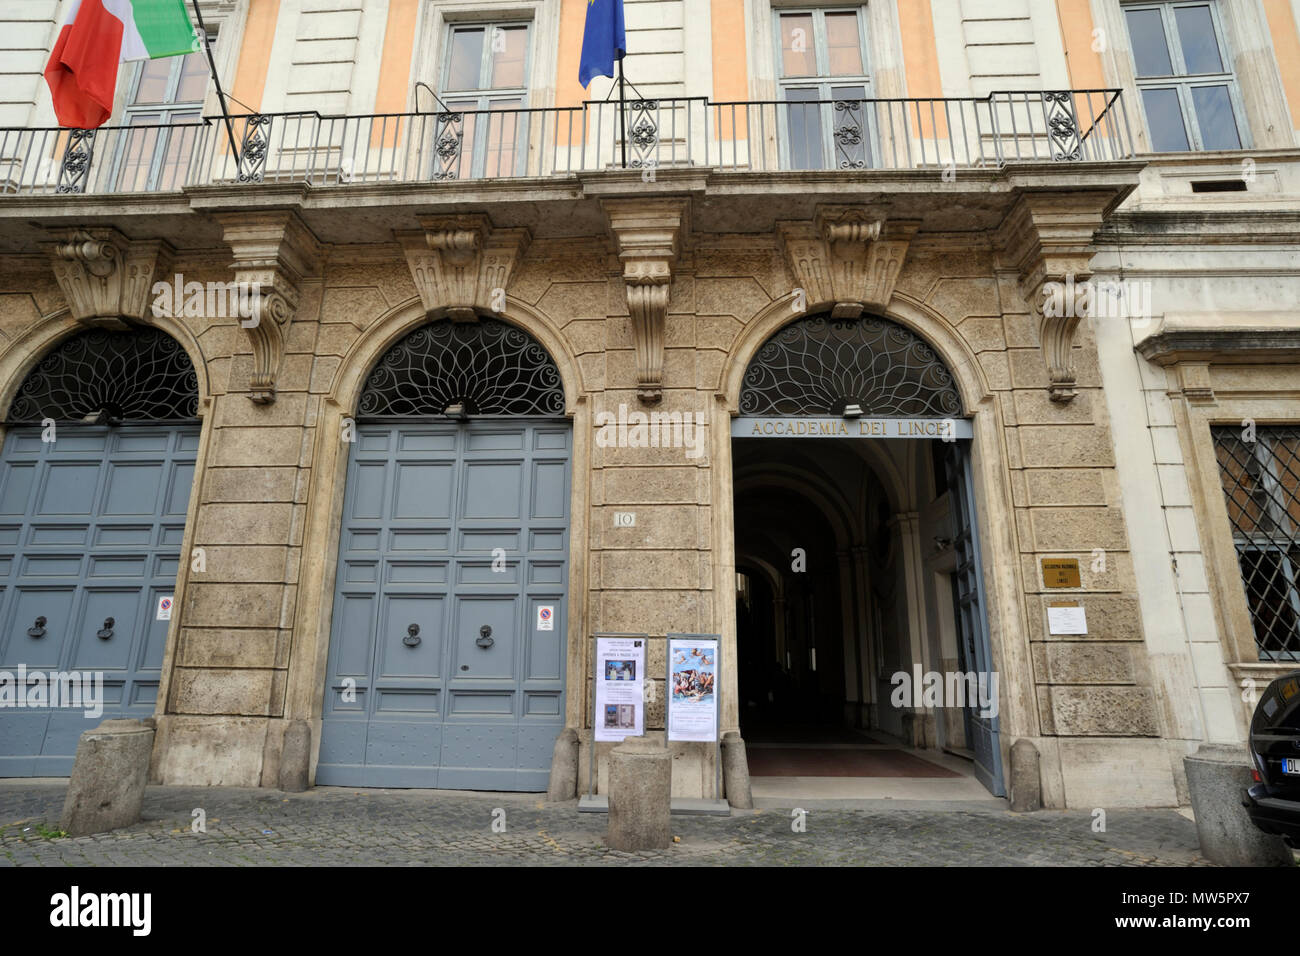 italy, rome, palazzo corsini, galleria nazionale di arte antica, corsini collection art gallery Stock Photo